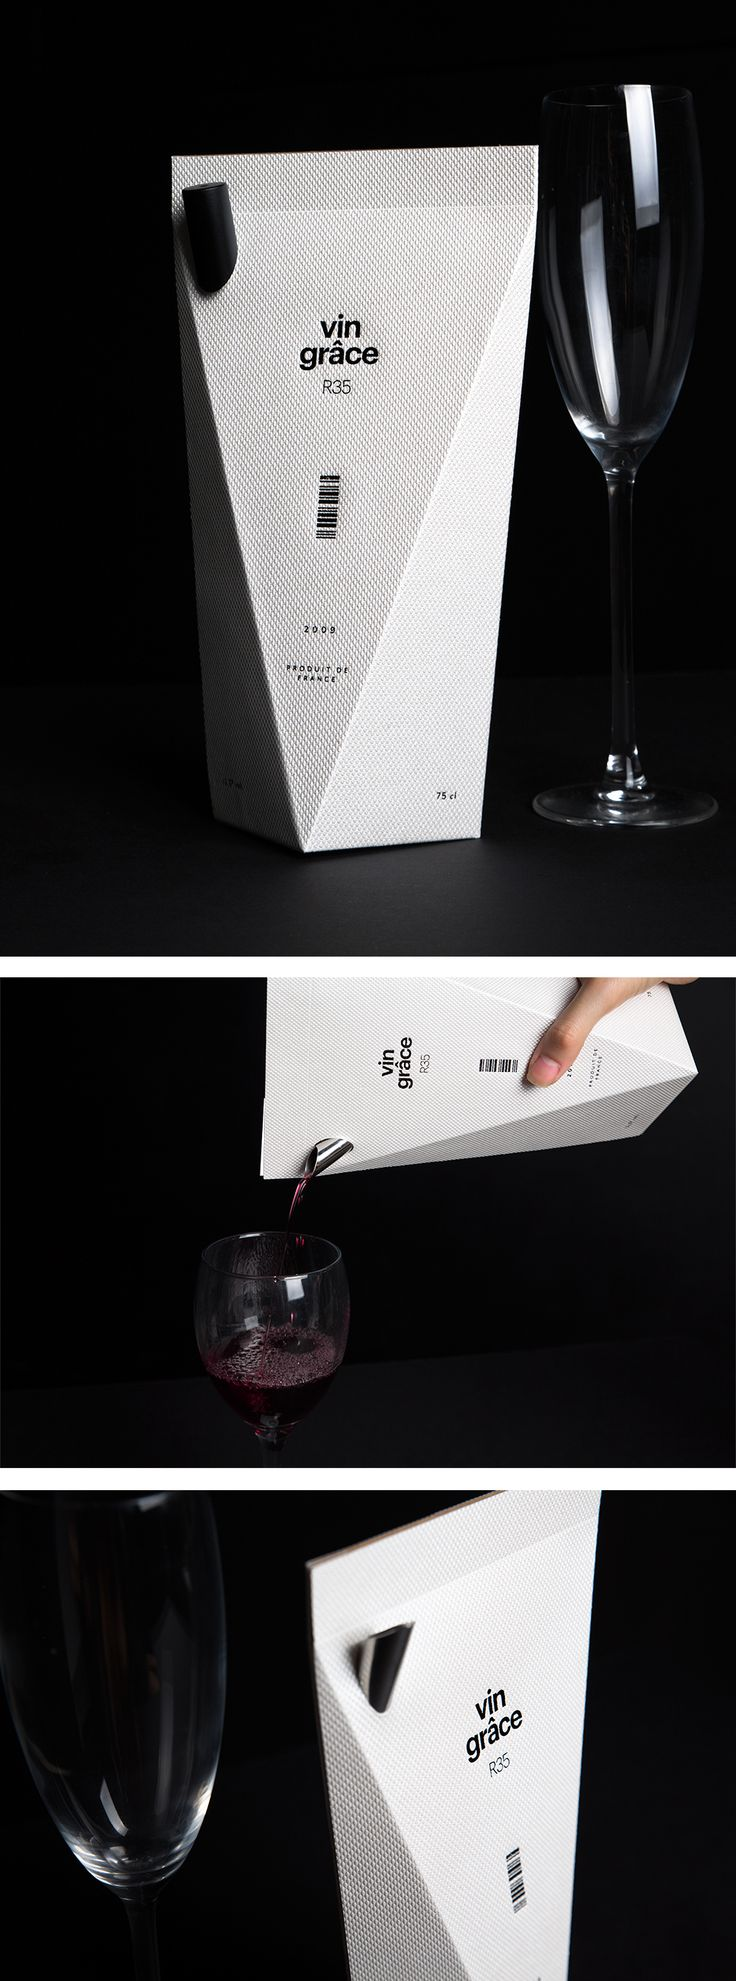 Here you go Cedar Total Spectrum - Creative Packaging. vin grâce wine by minimalist. Beautiful #packaging curated by Packaging Diva PD